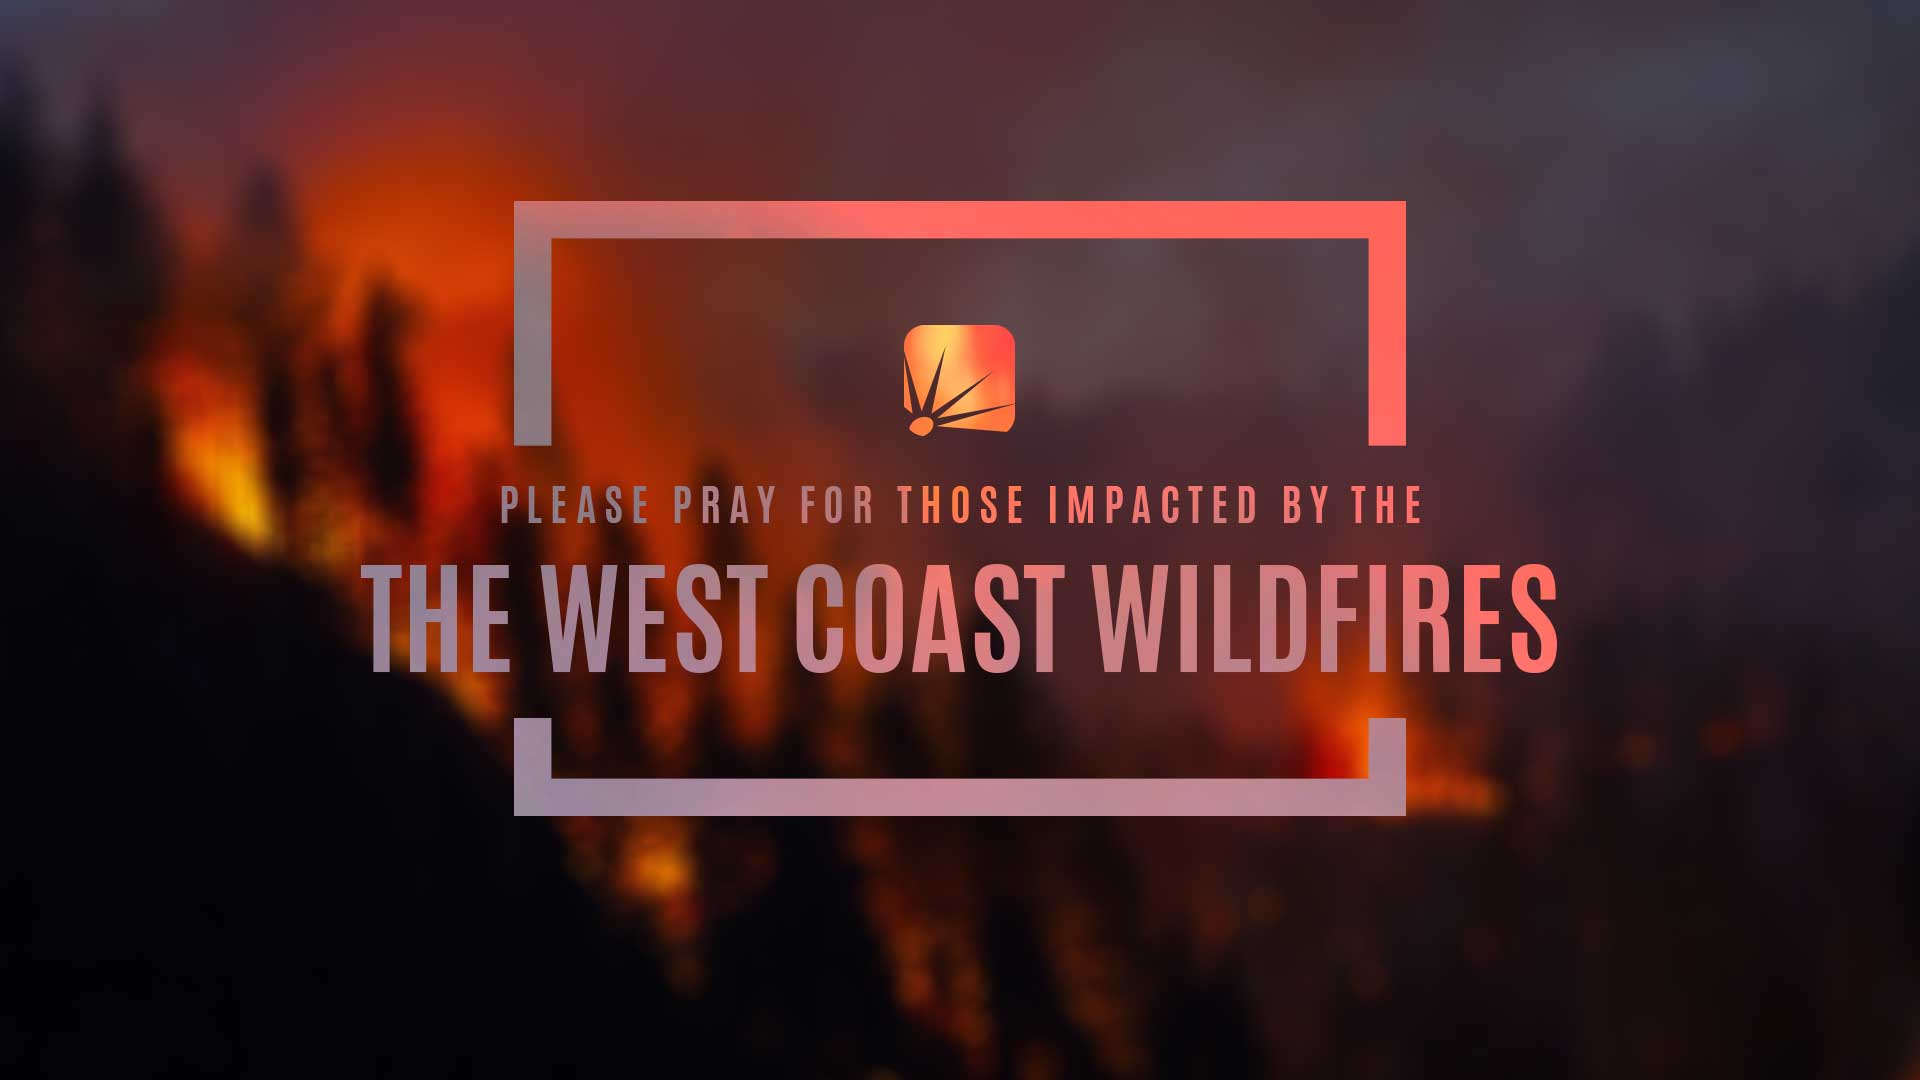 Pray for Those Impacted by the West Coast Wildfires